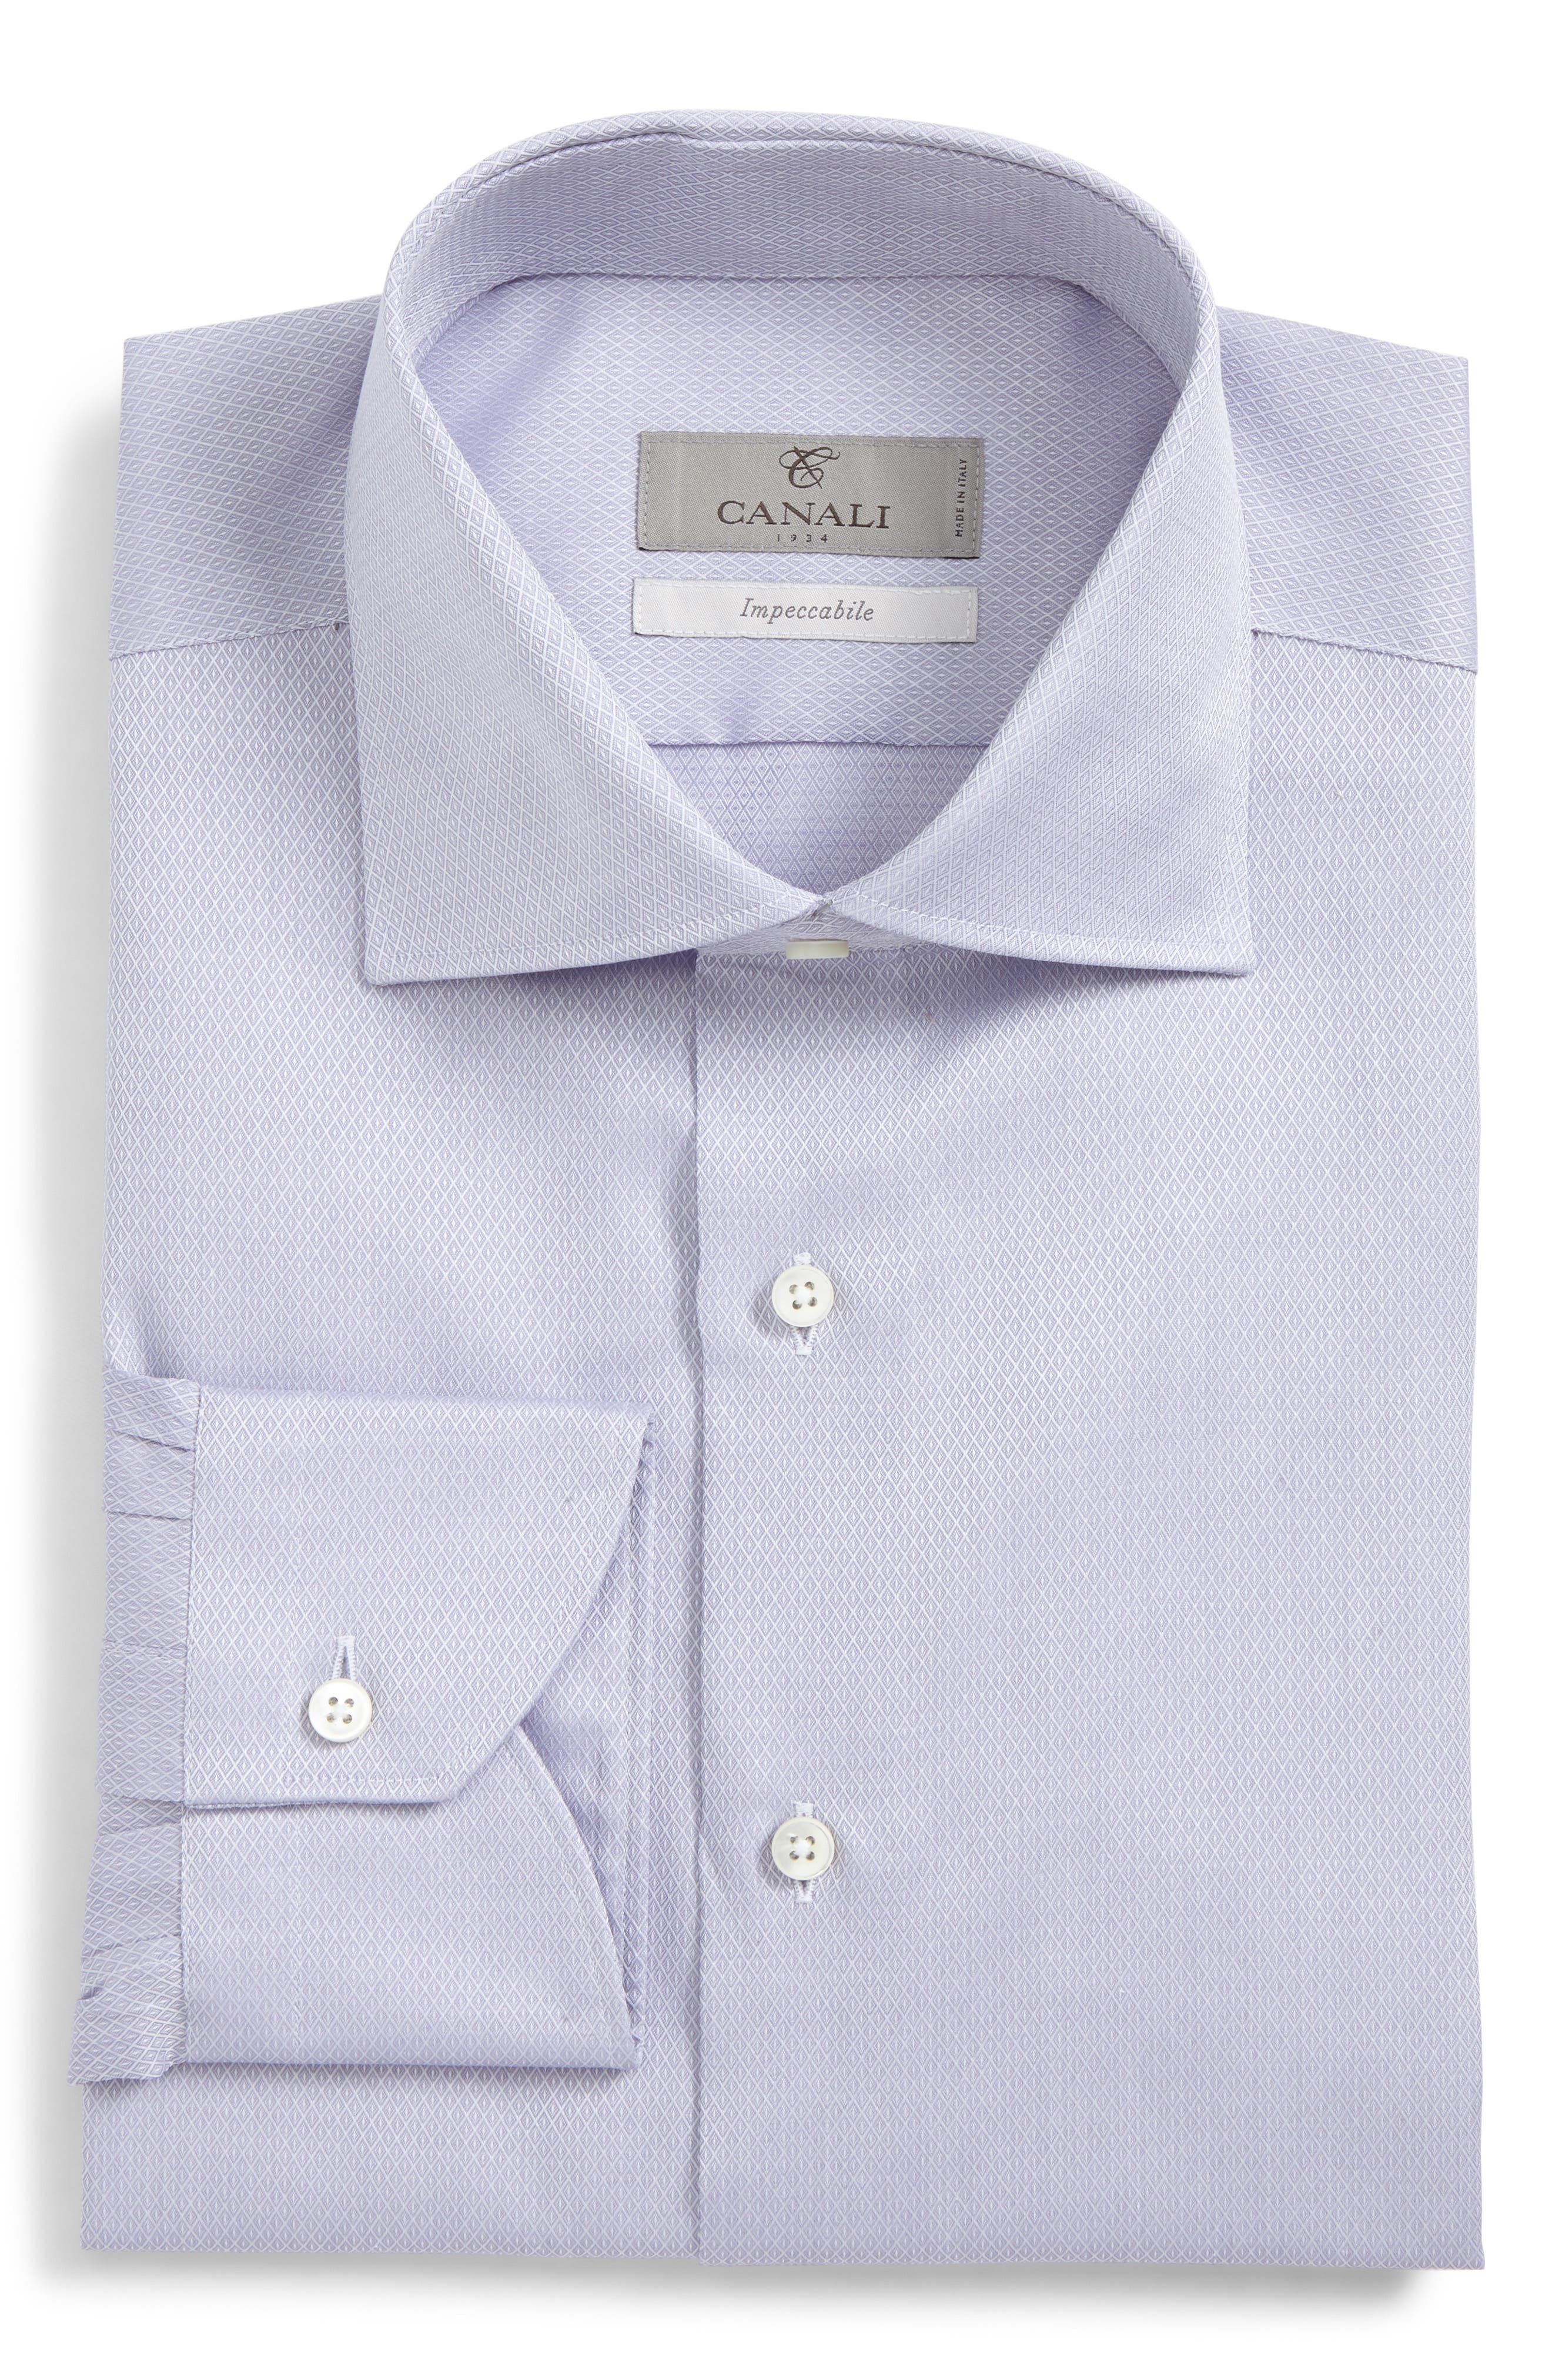 Regular Fit Geometric Dress Shirt,                         Main,                         color, 530